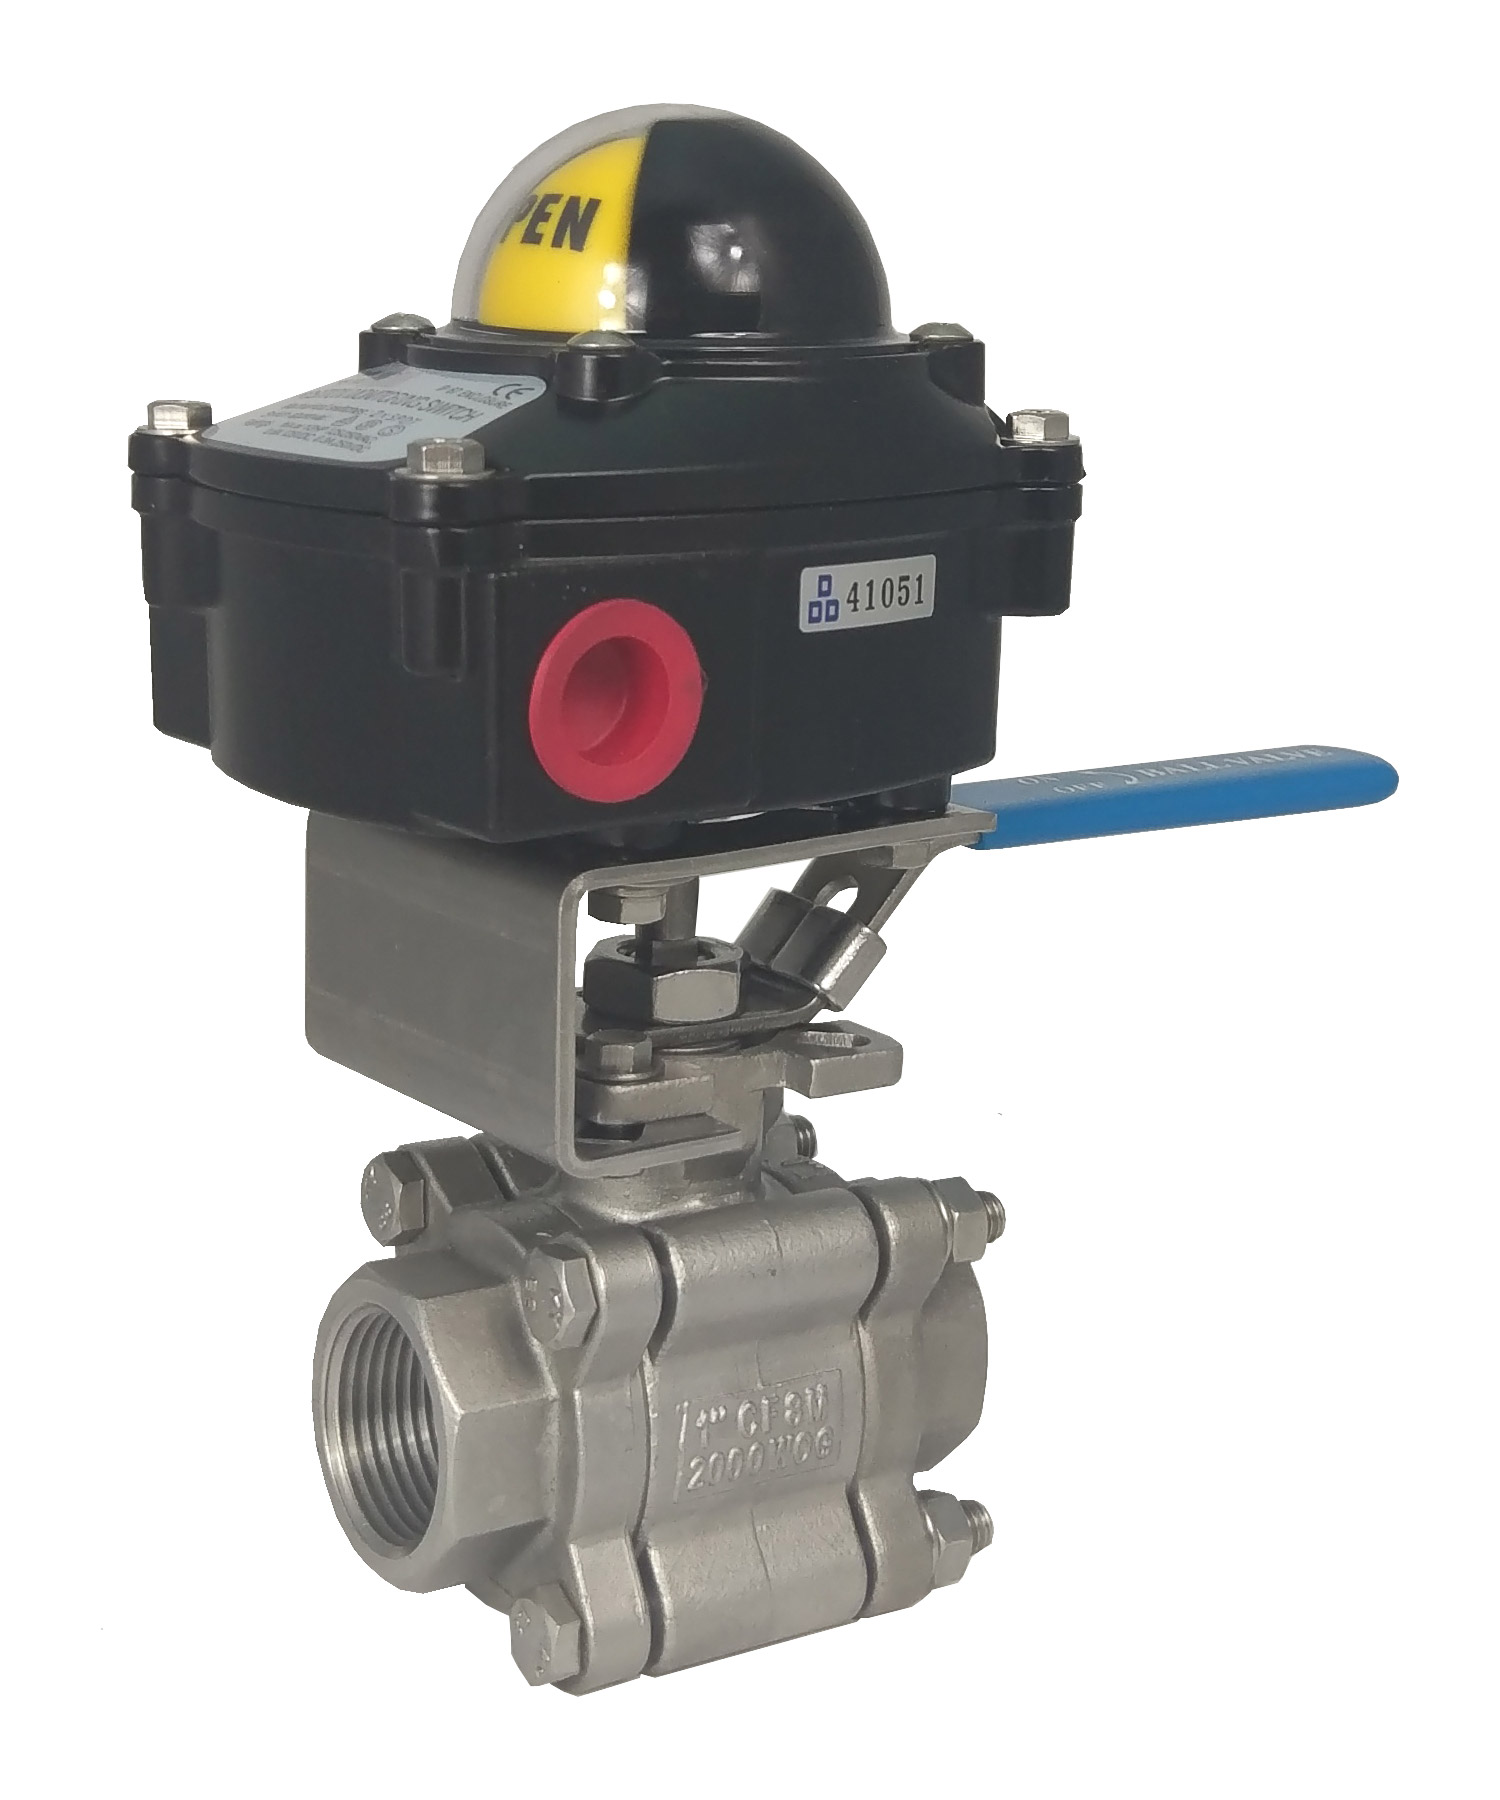 SINGLE Acting Pneumatic Actuator With Ball Valvemanual ball valve with limit switch box